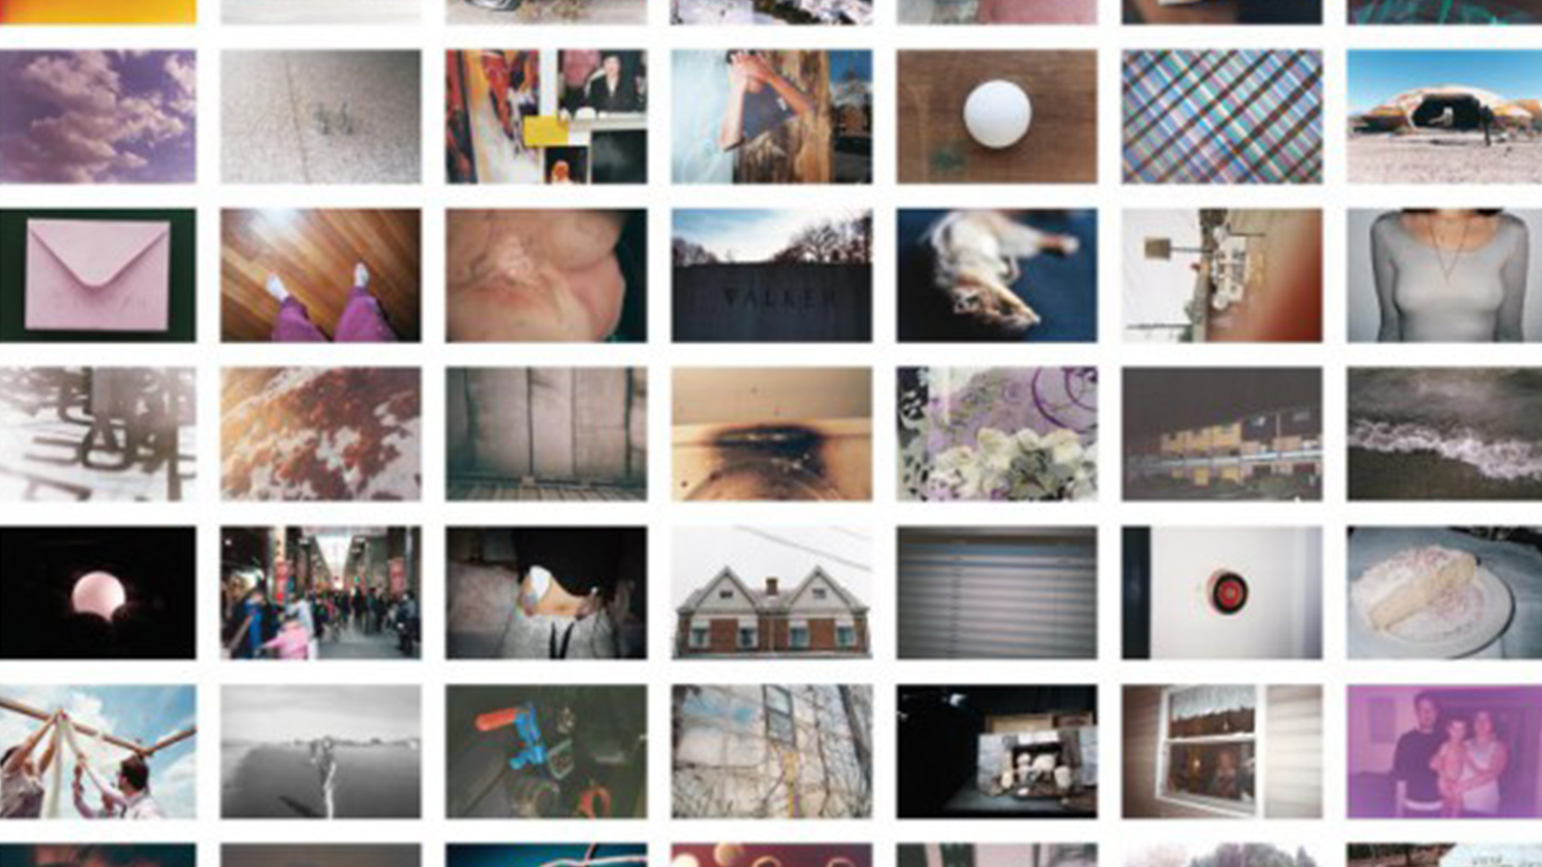 Montage of many snapshot photographs